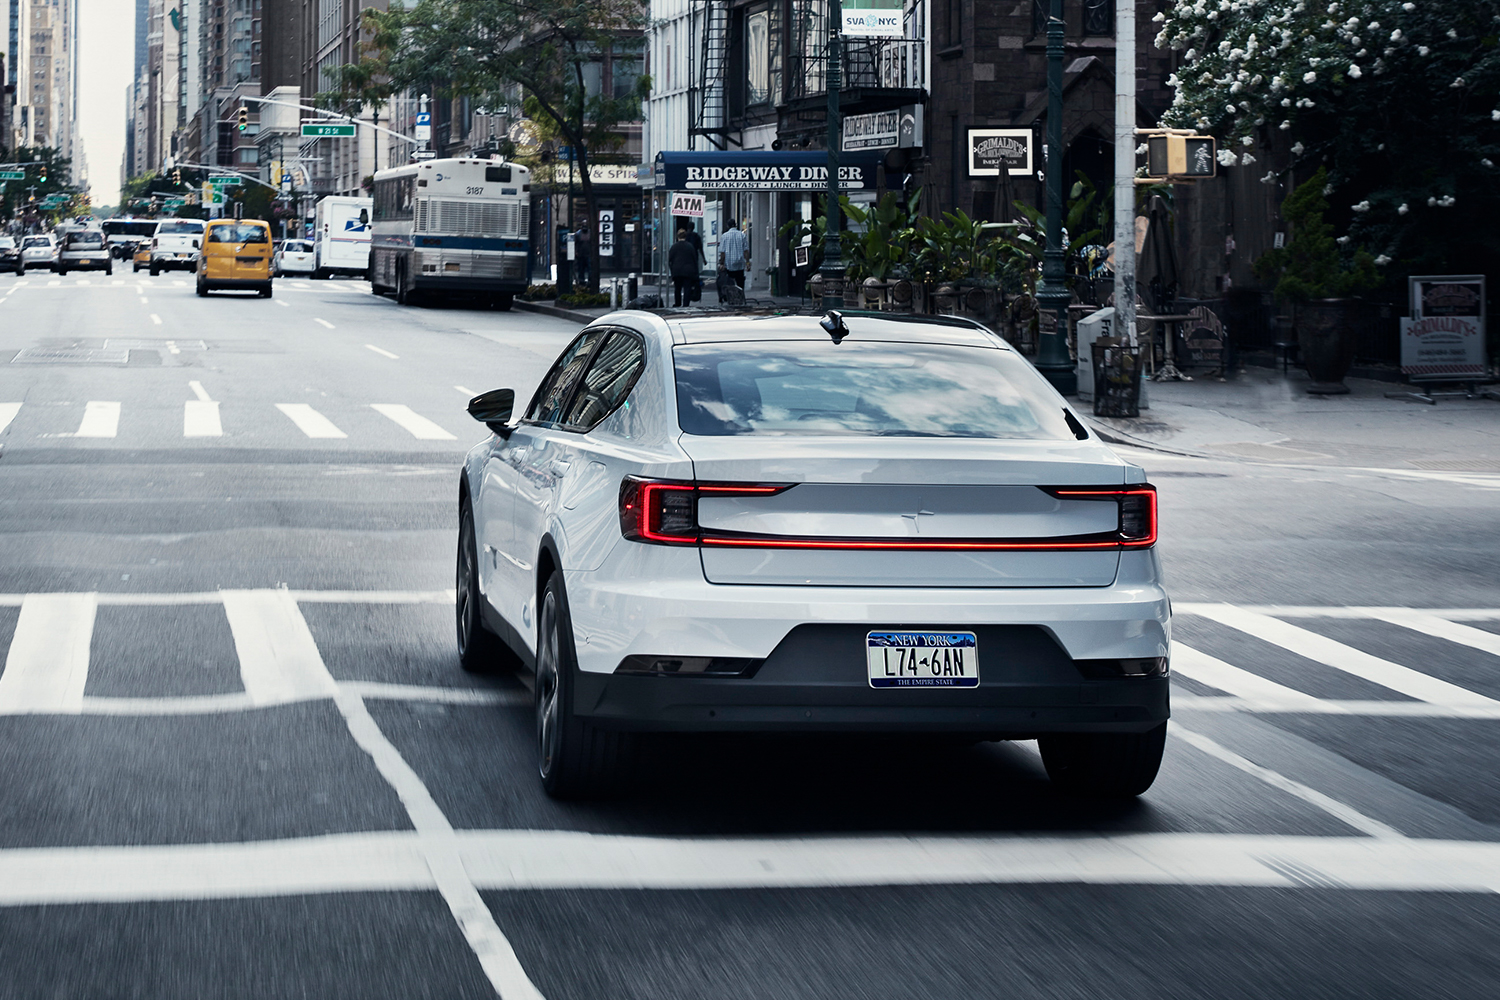 The 2021 Polestar 2 driving down the streets of New York City